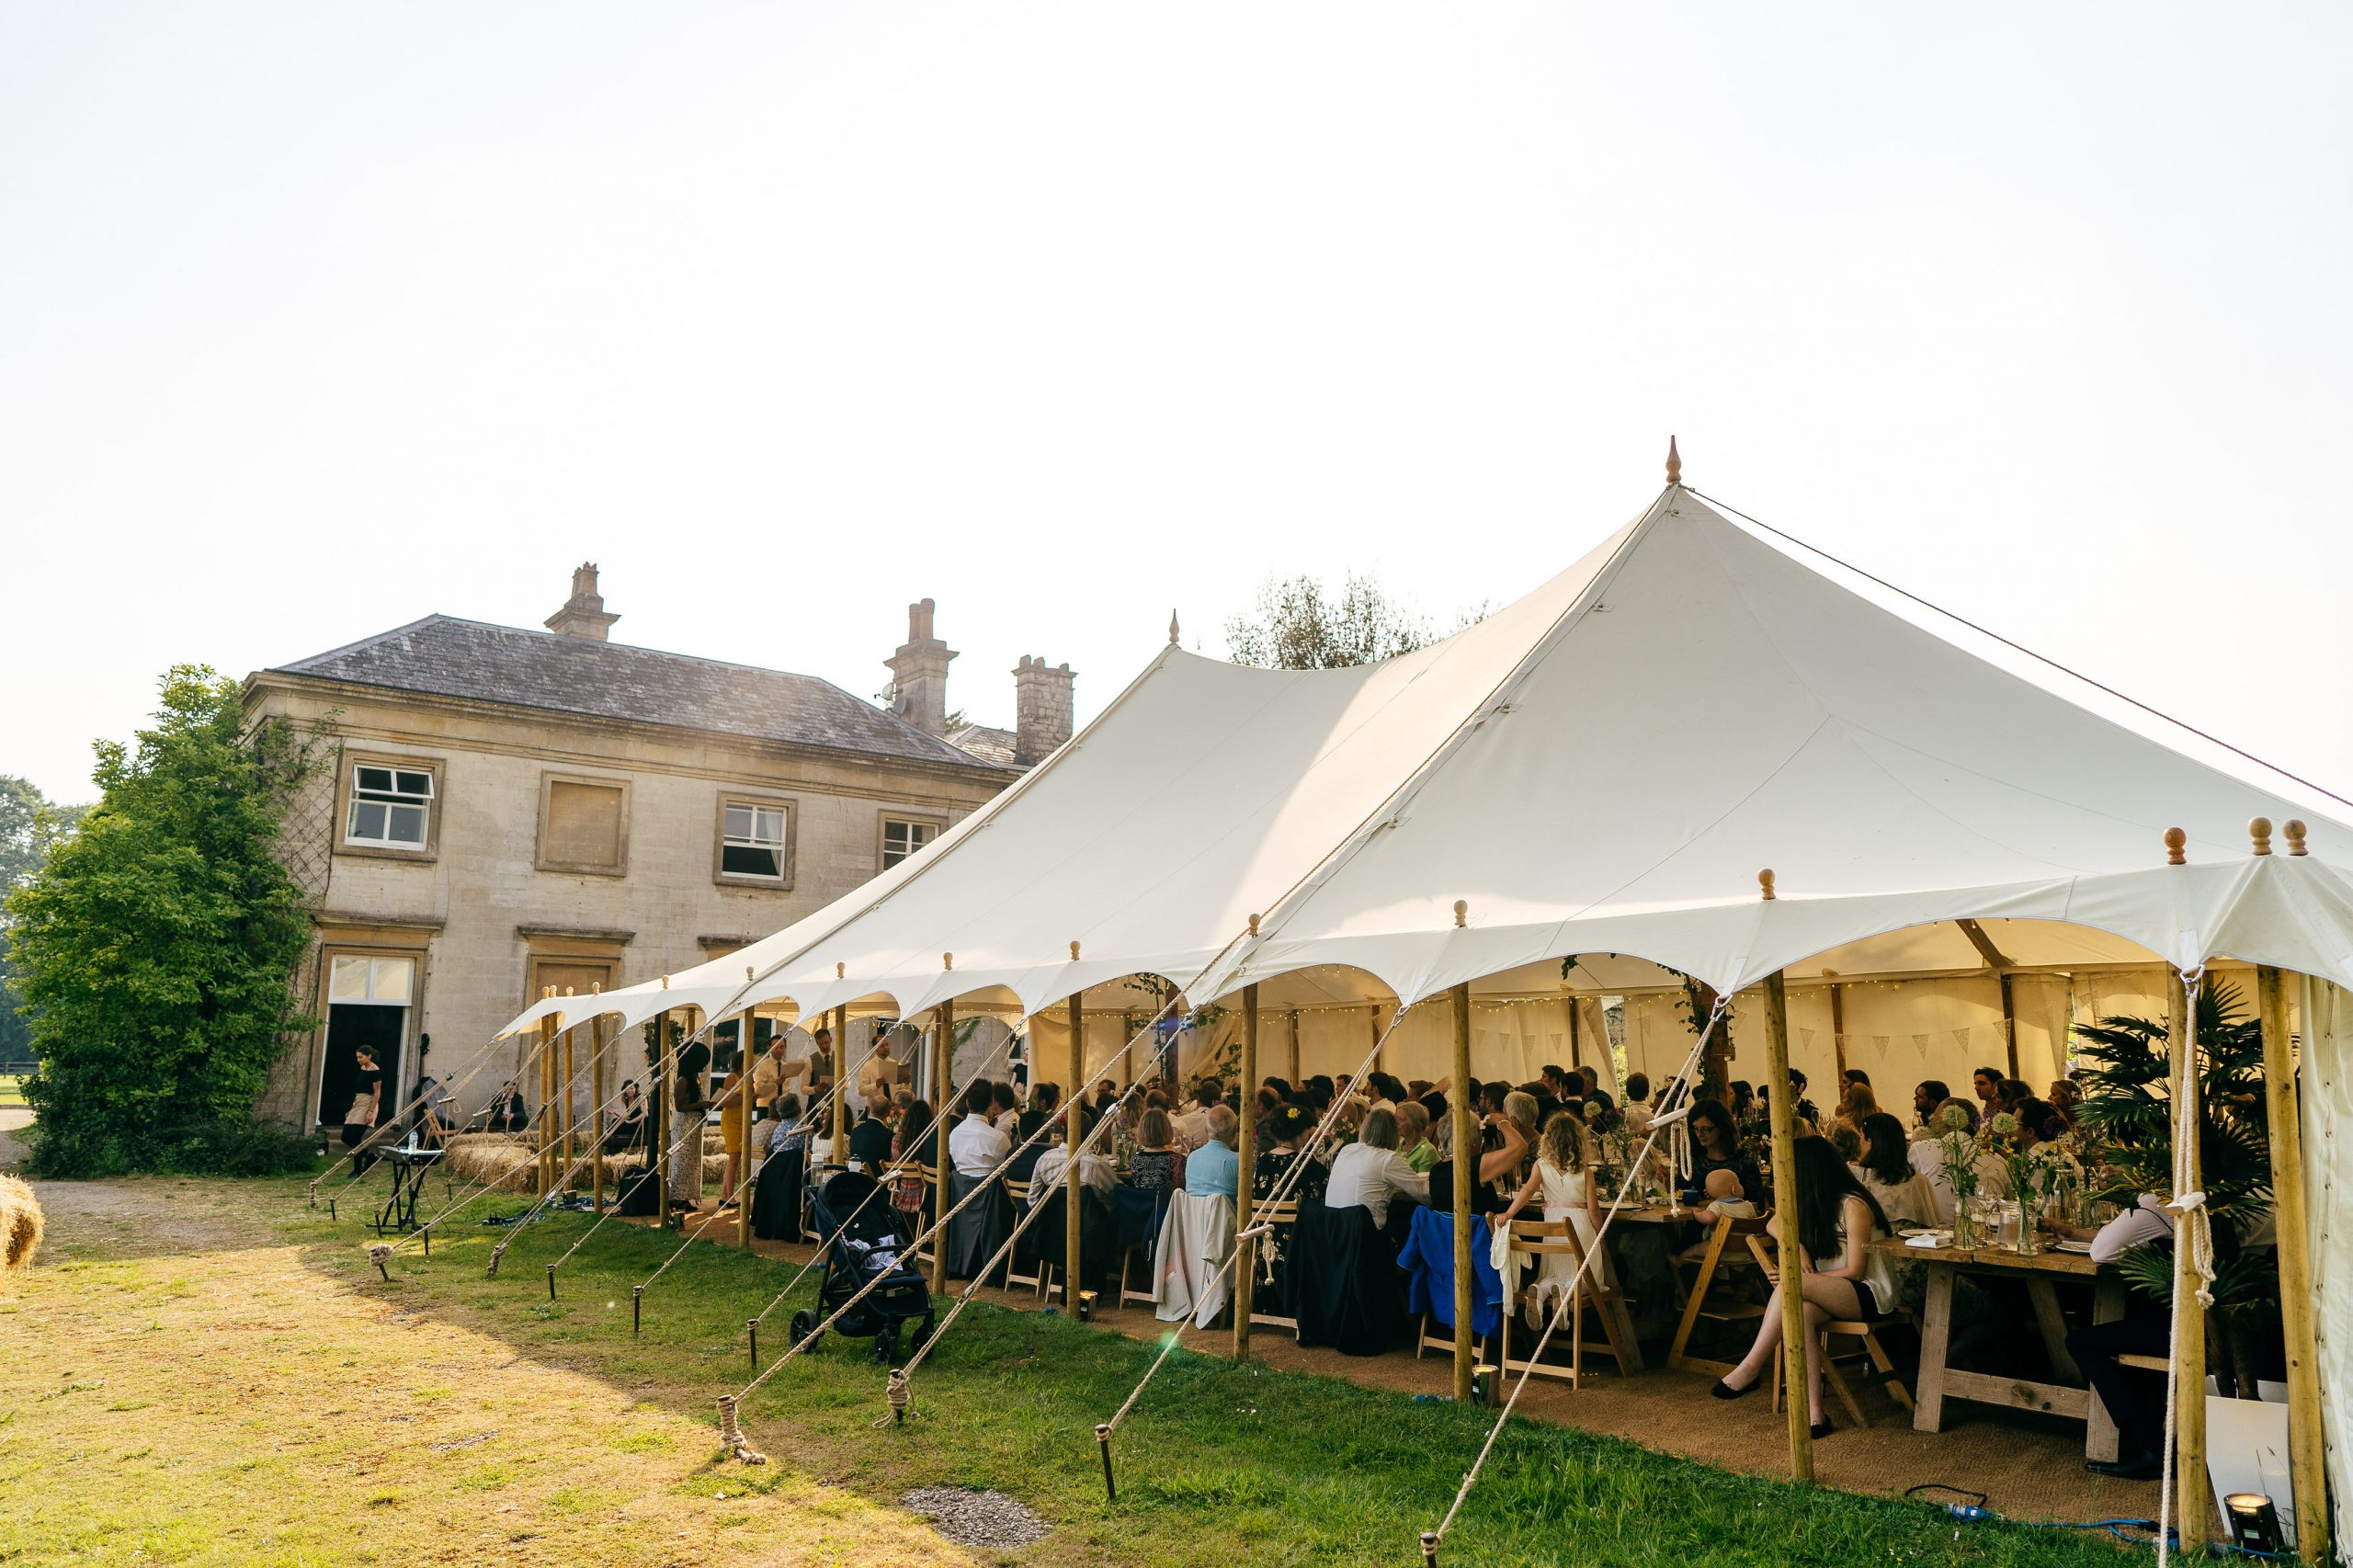 Marquee set up in grounds of Sparkford Hall Wedding that can seat 250 people